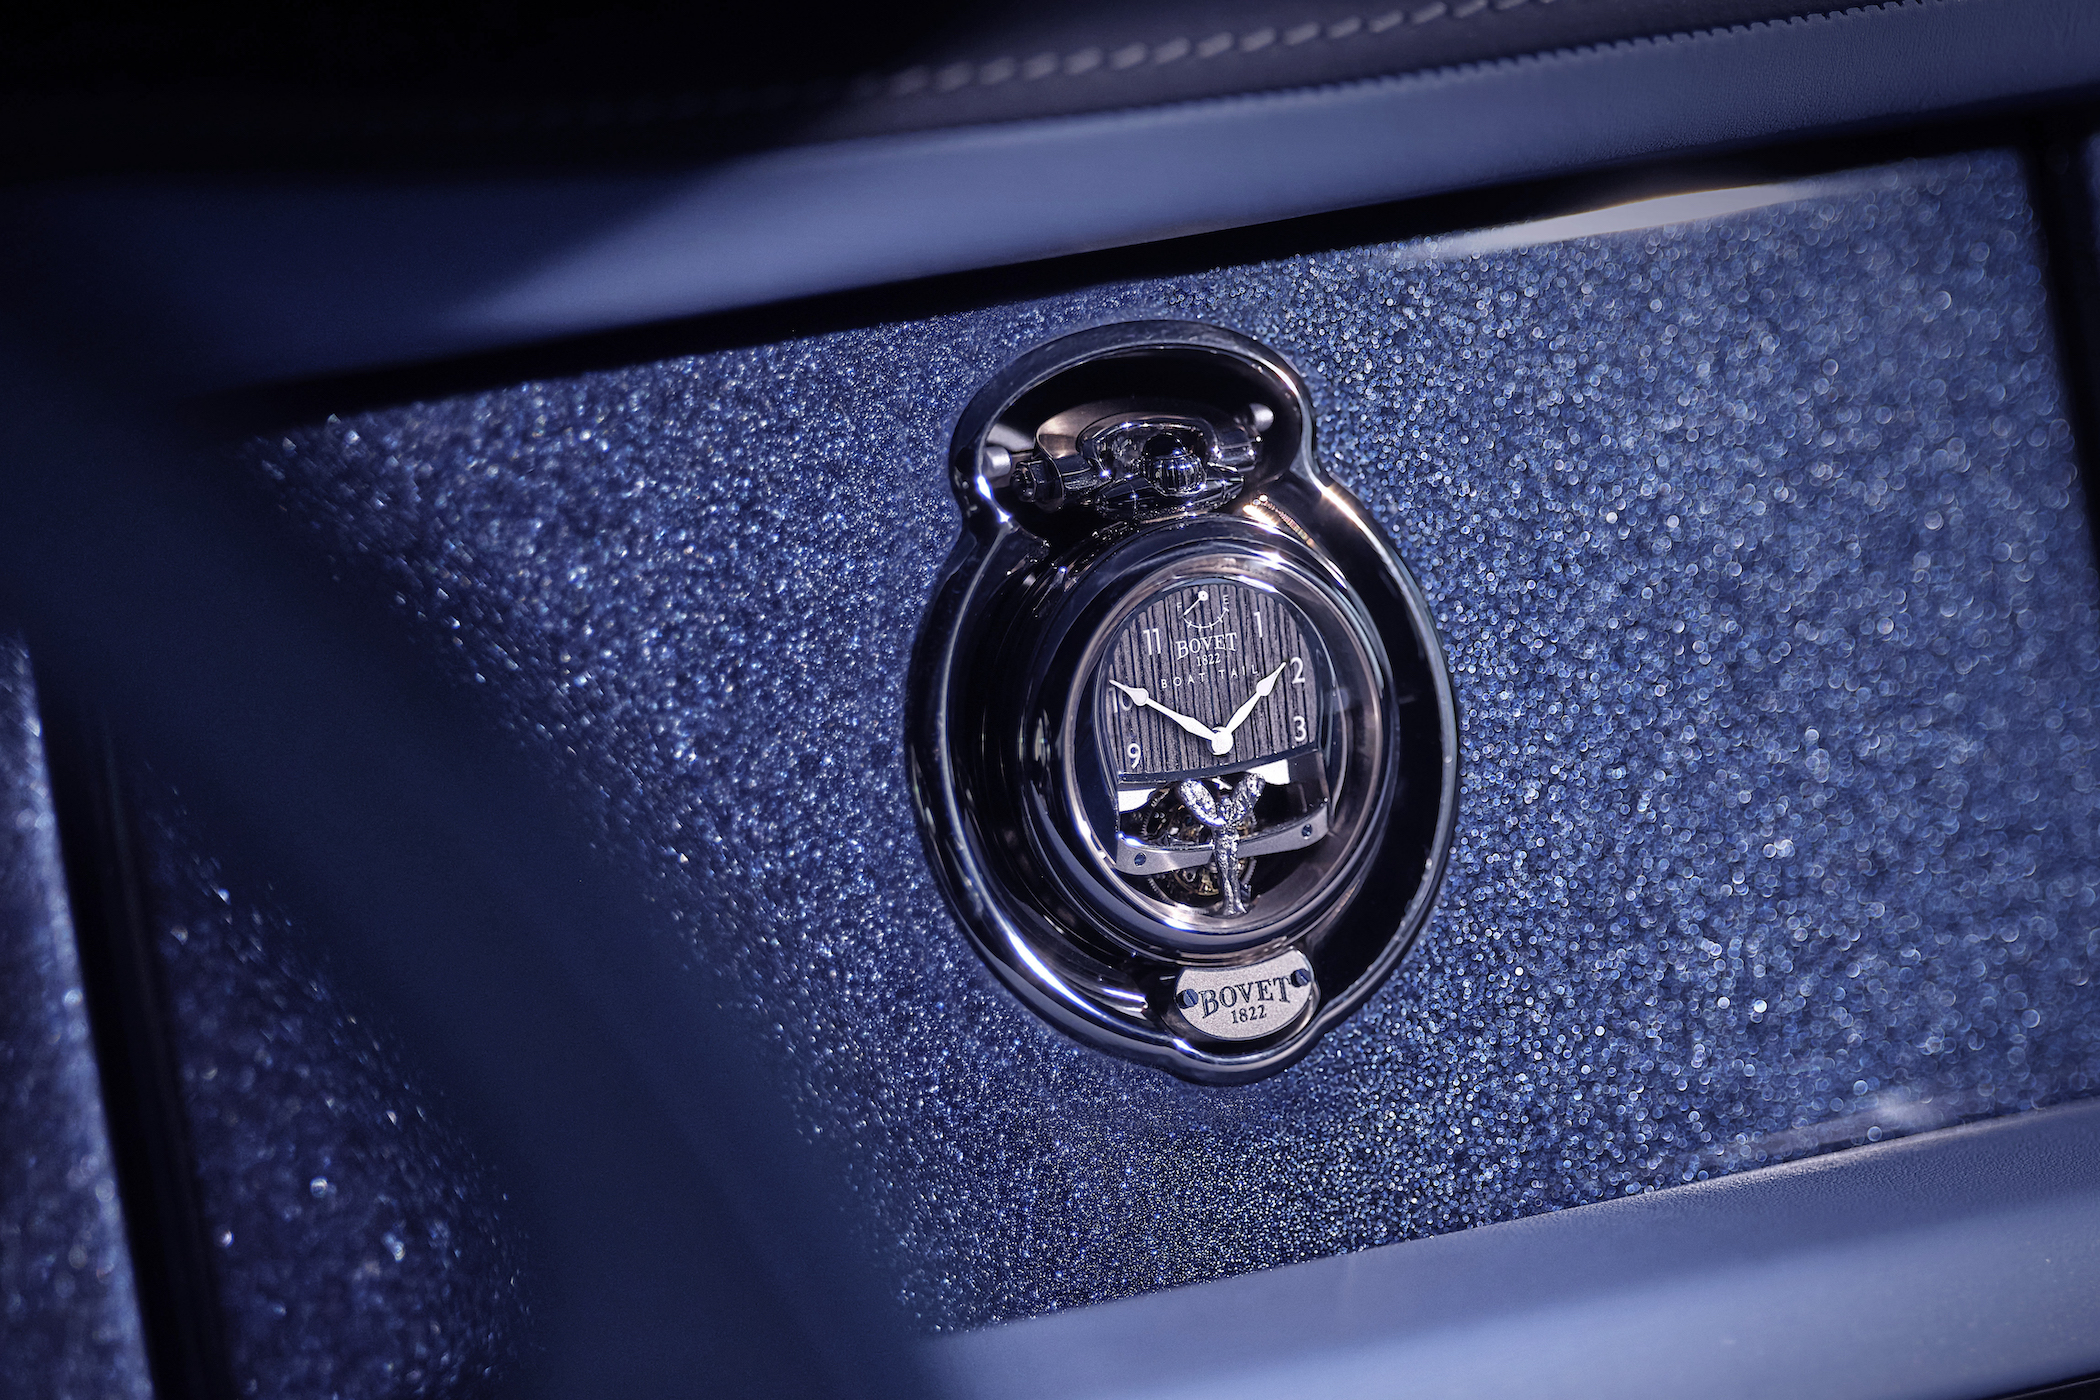 Bovet X Rolls Royce Boat Tail Collection of Bespoke Watches